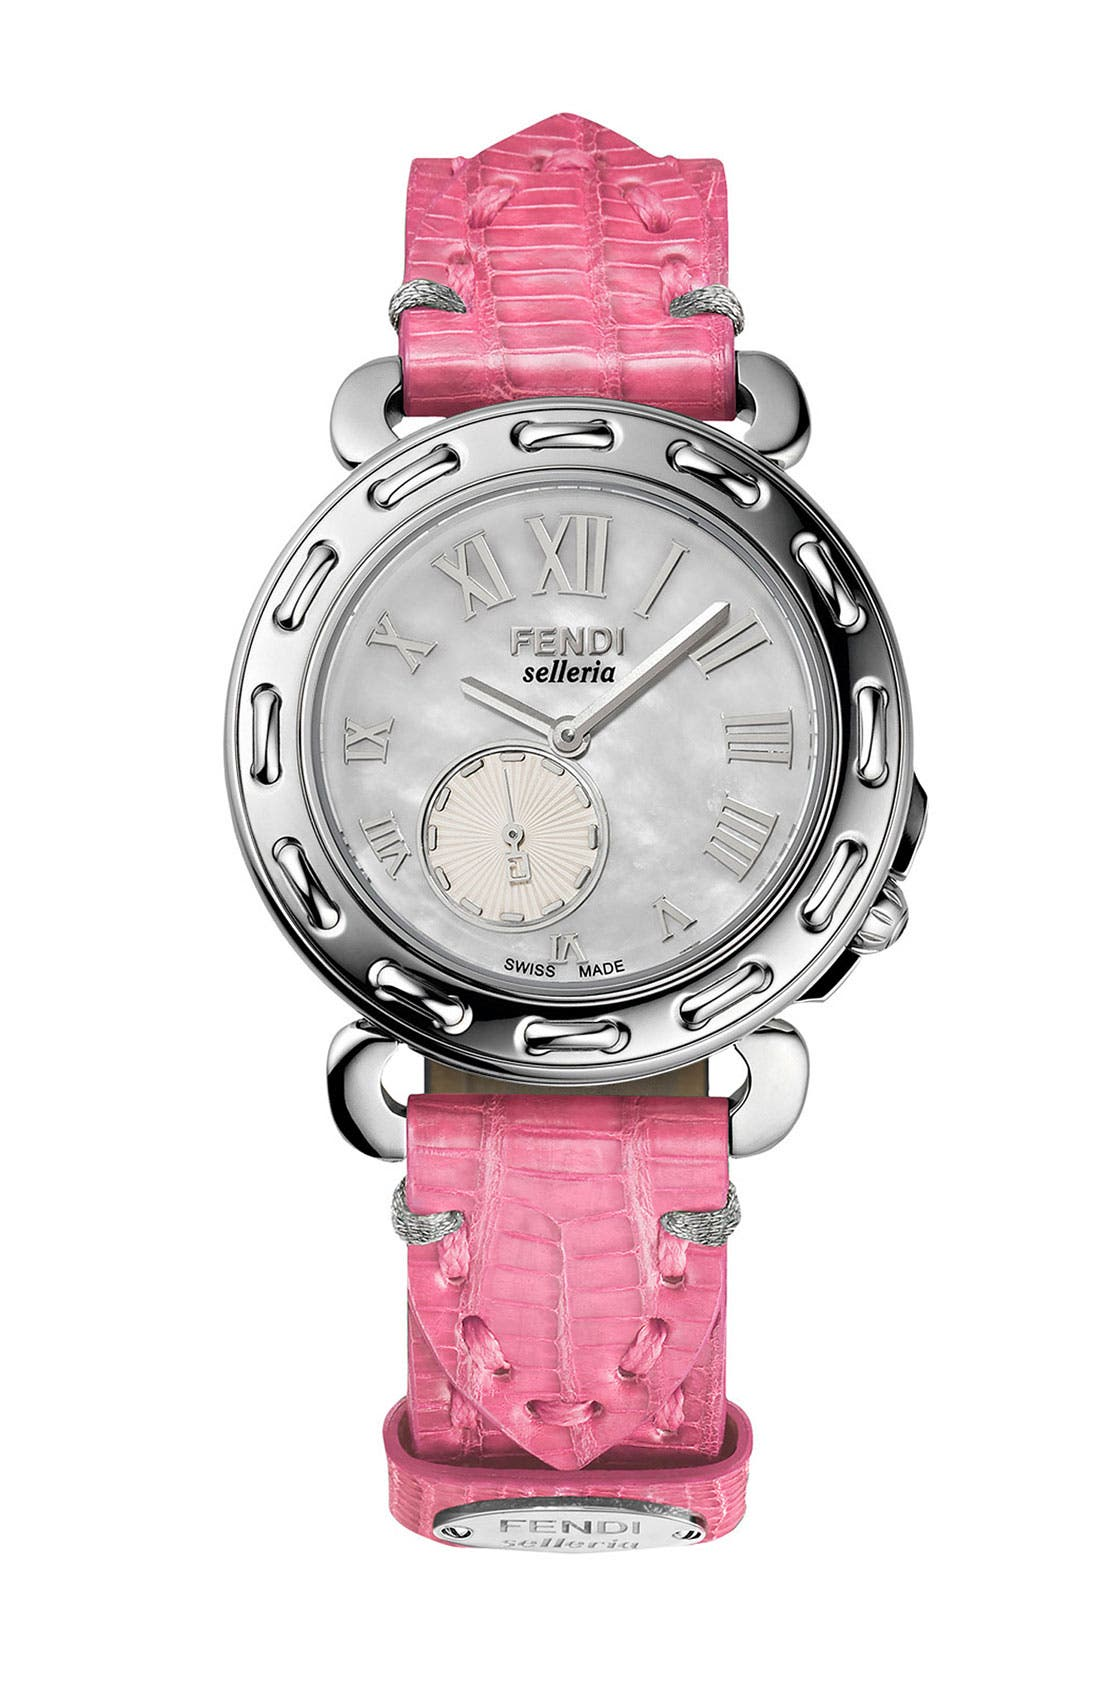 Main Image - Fendi 'Selleria' Customizable Watch